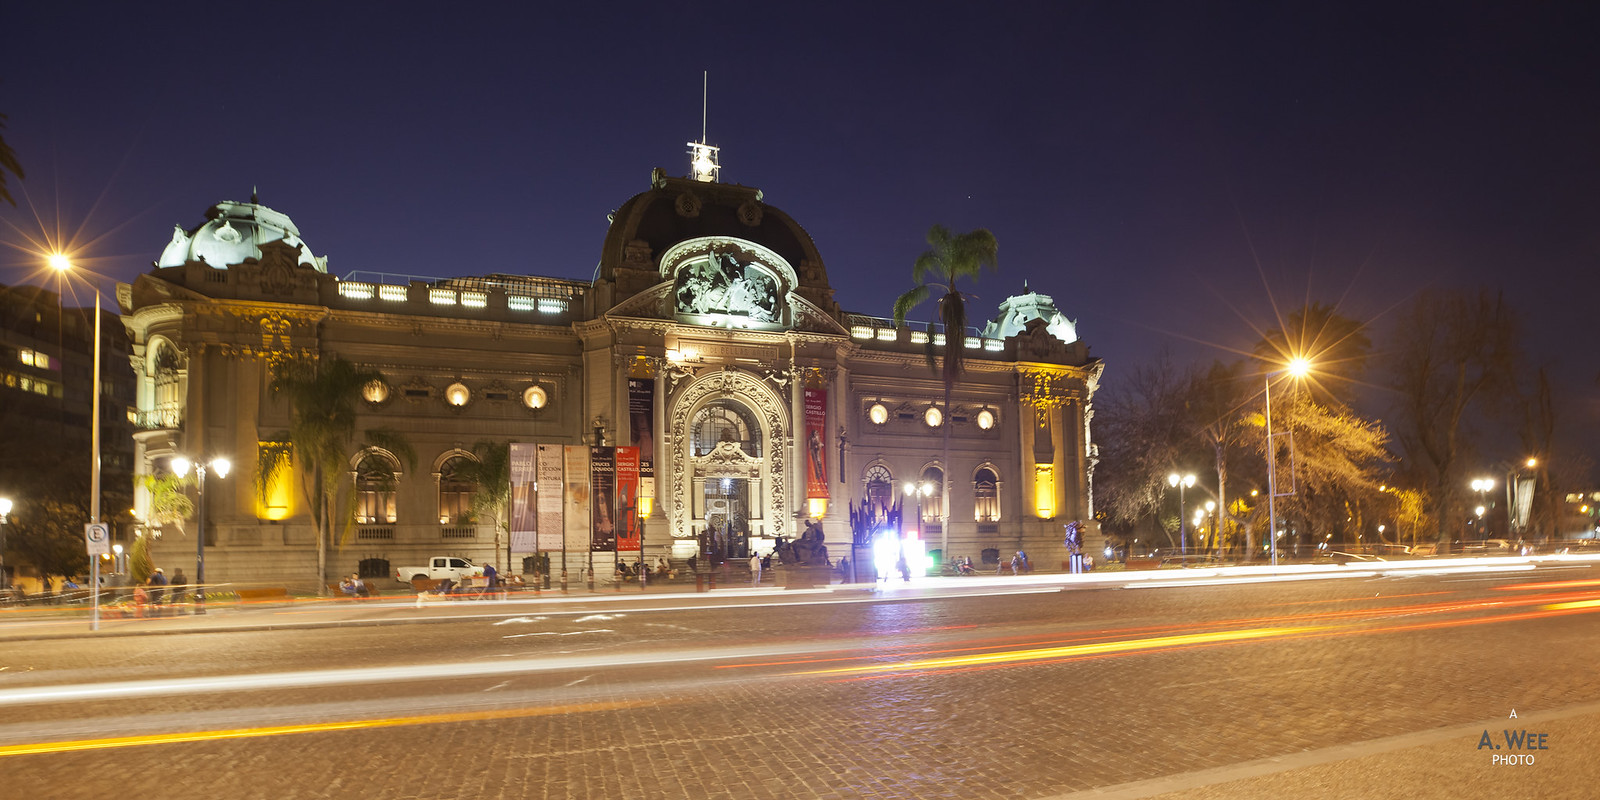 Museo de Bellas Artes at night